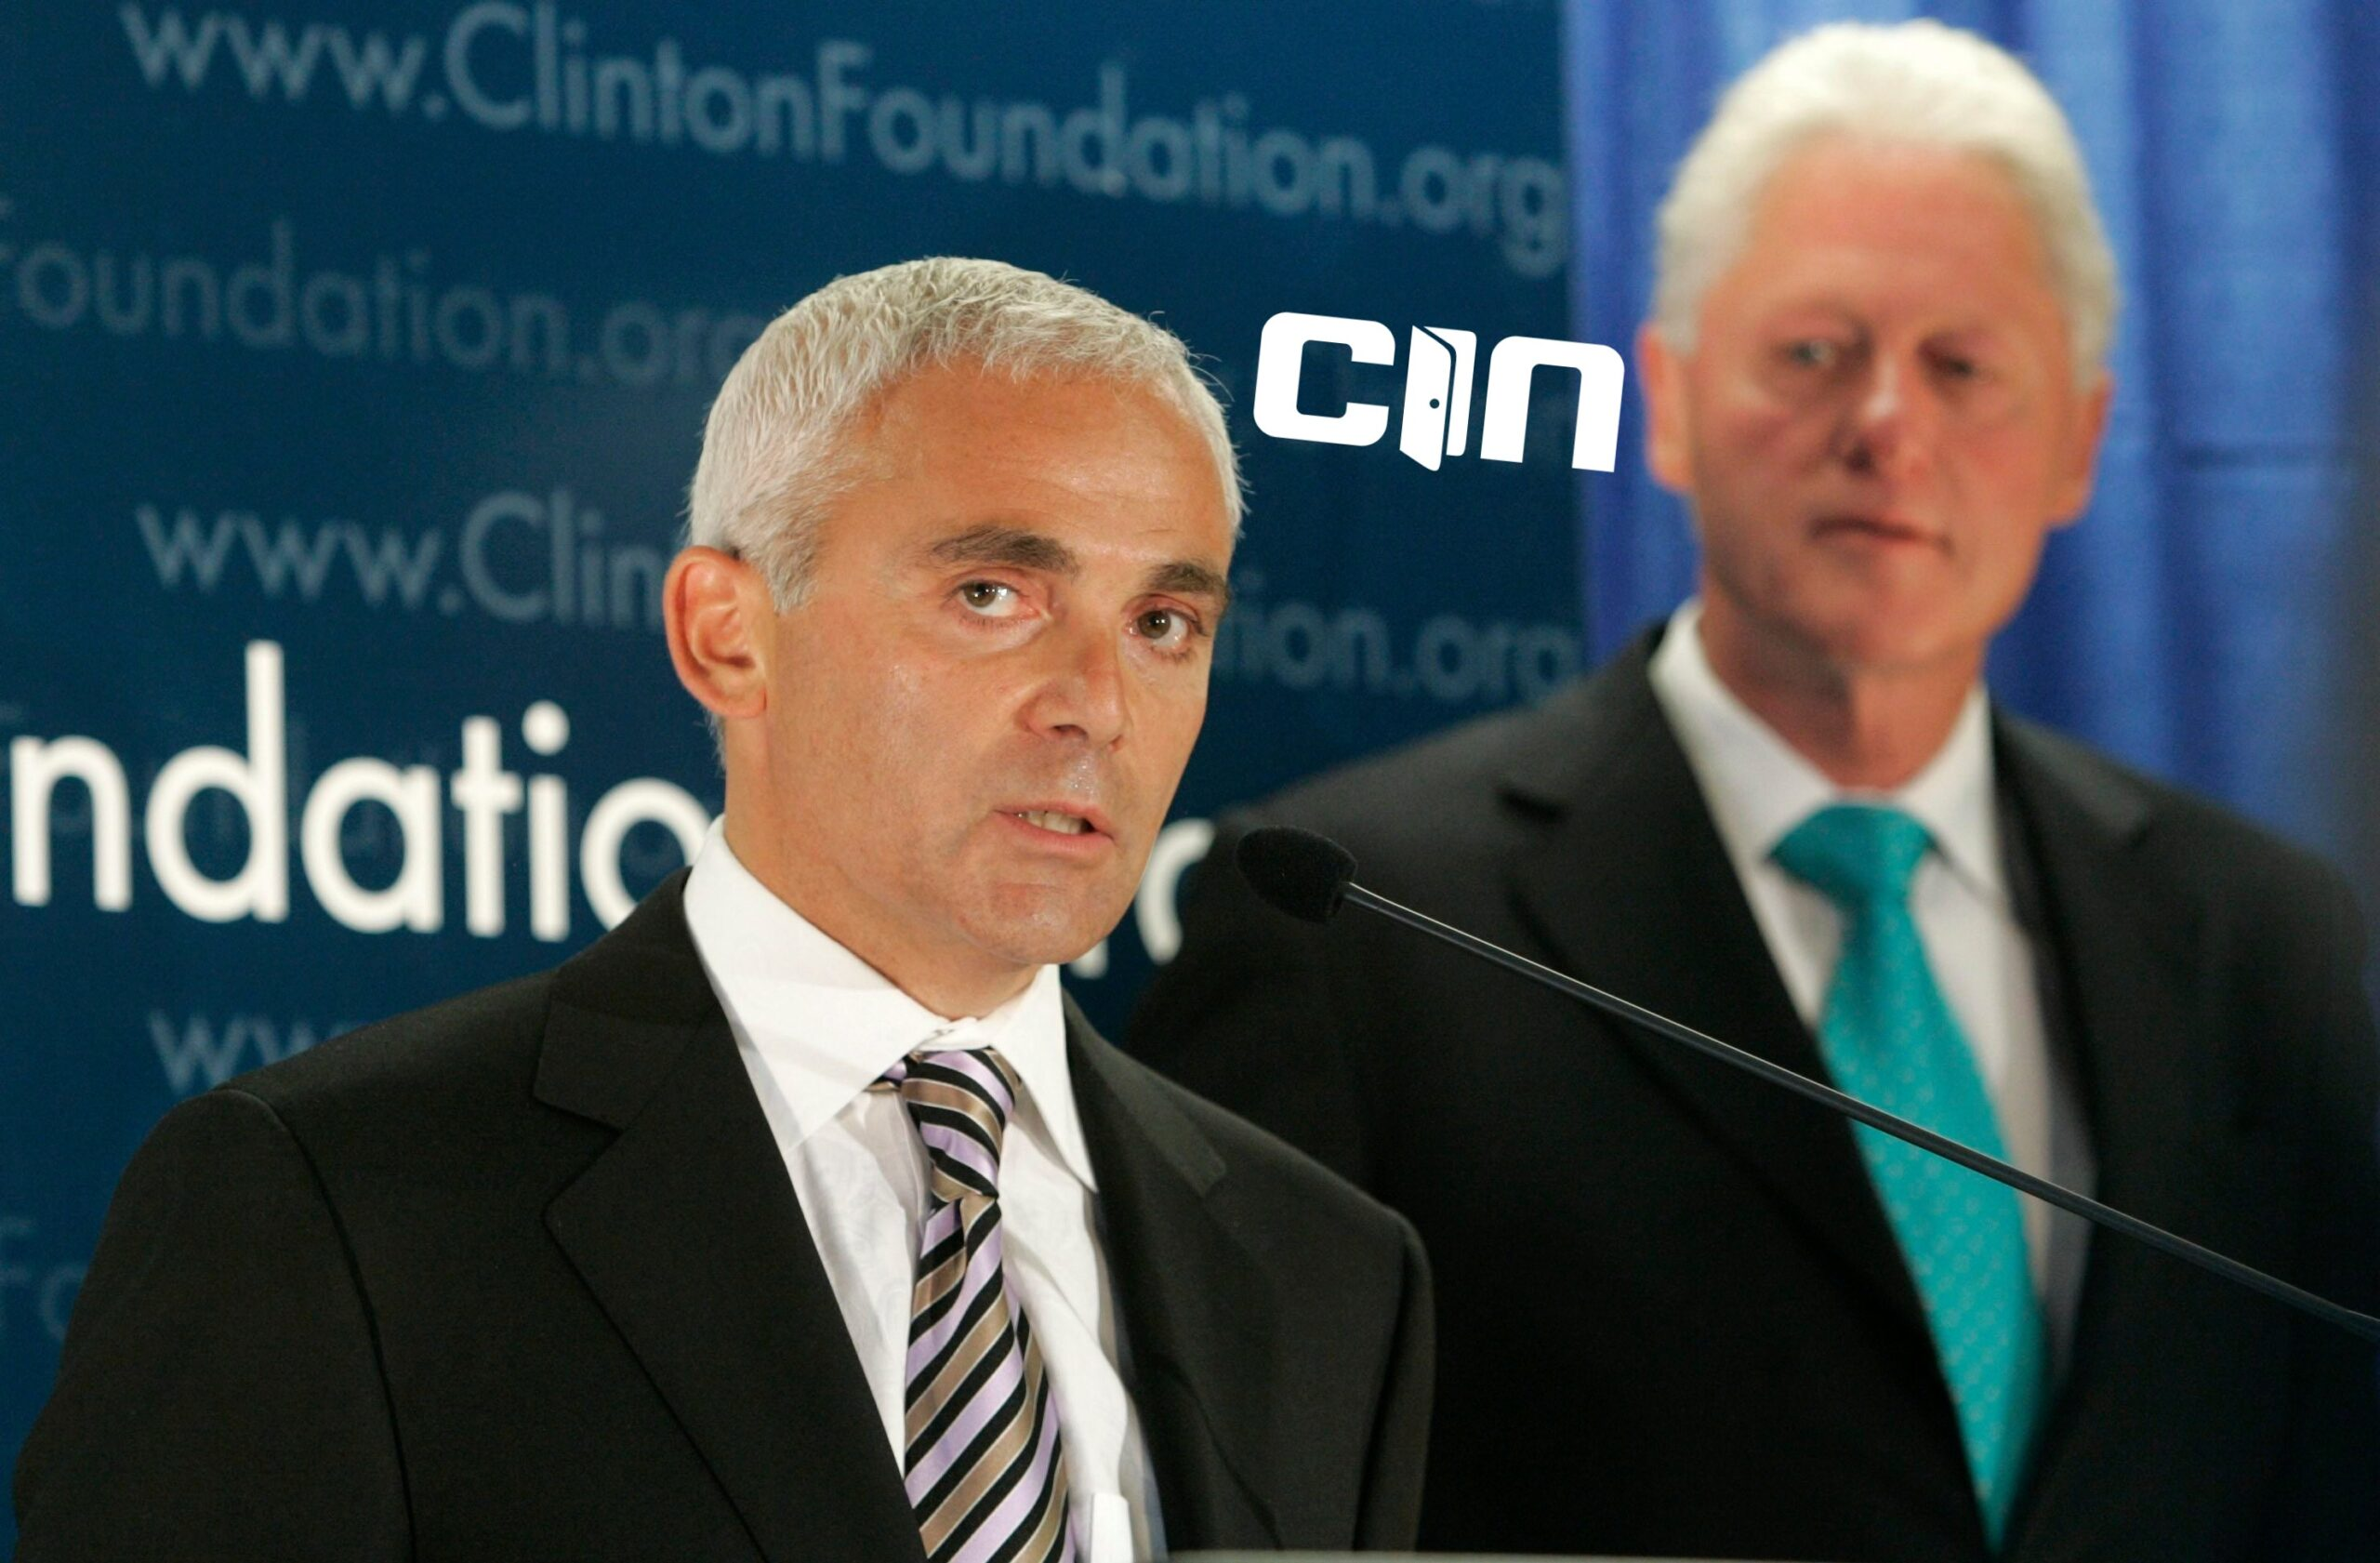 Frank Giustra Seeks to Silence Twitter Users